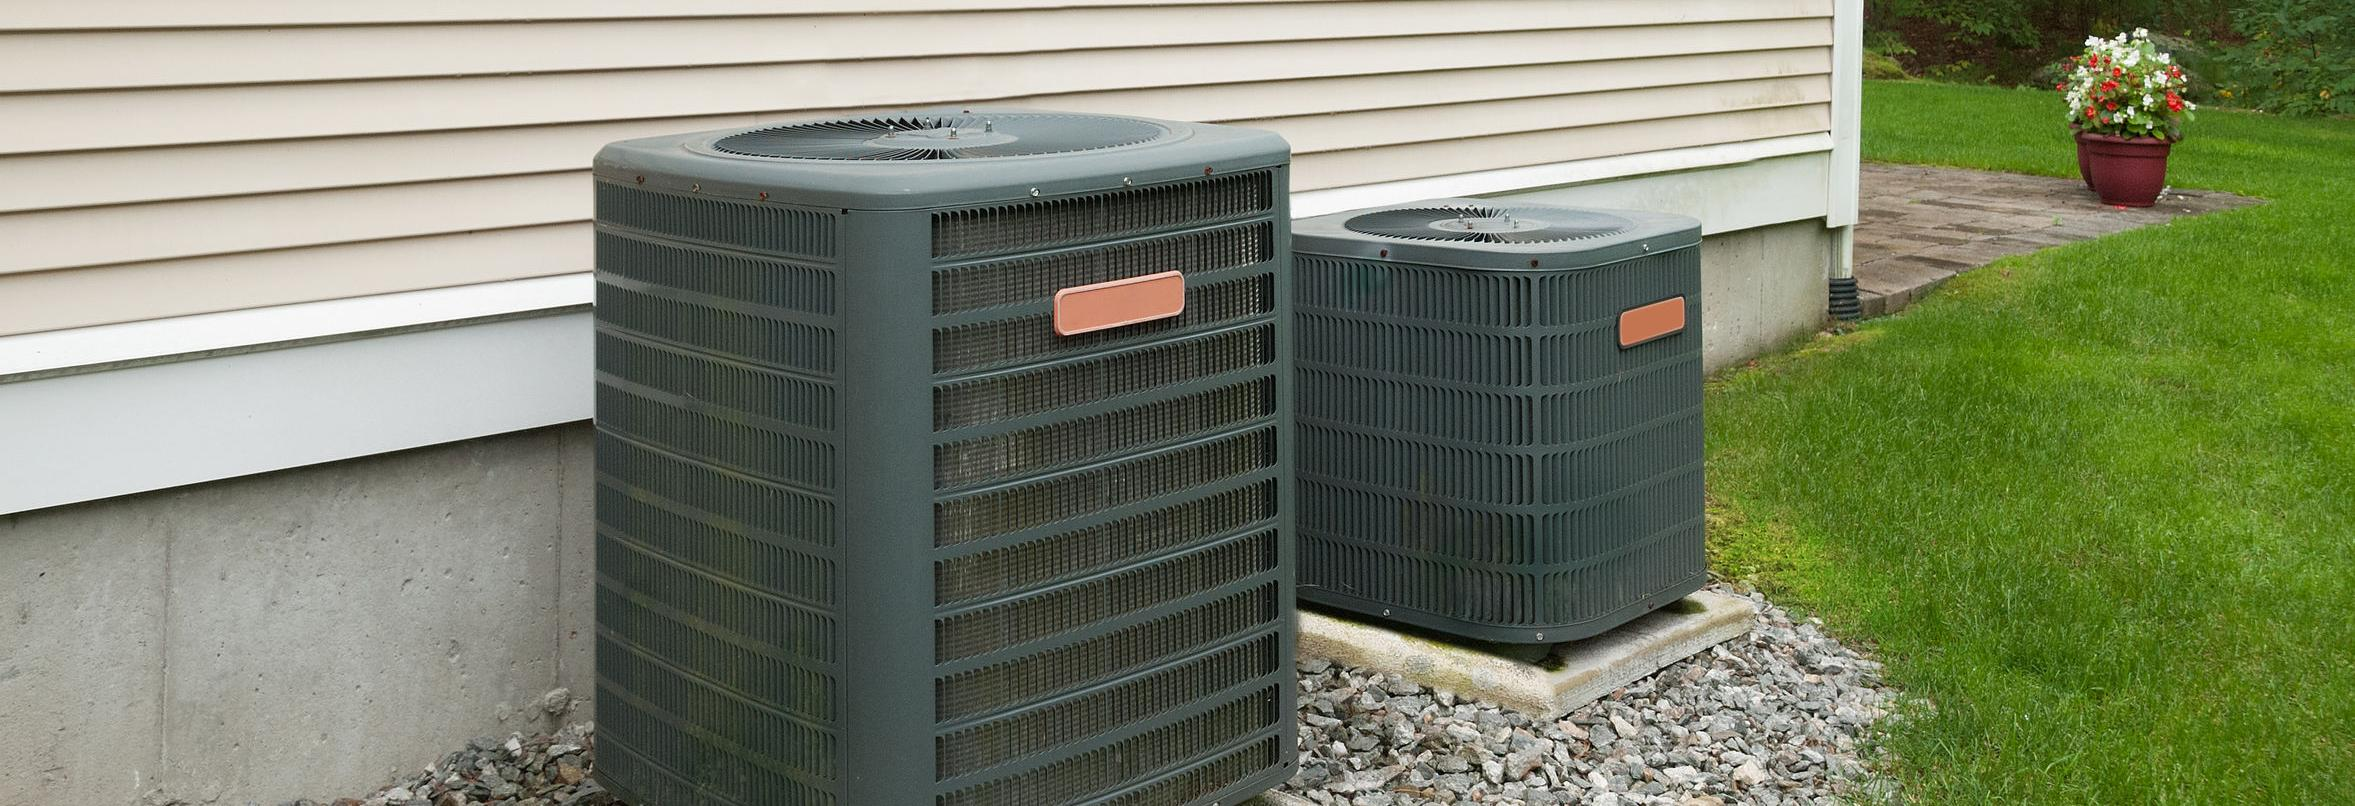 Essential Air Conditioning - Tampa Bay FL banner